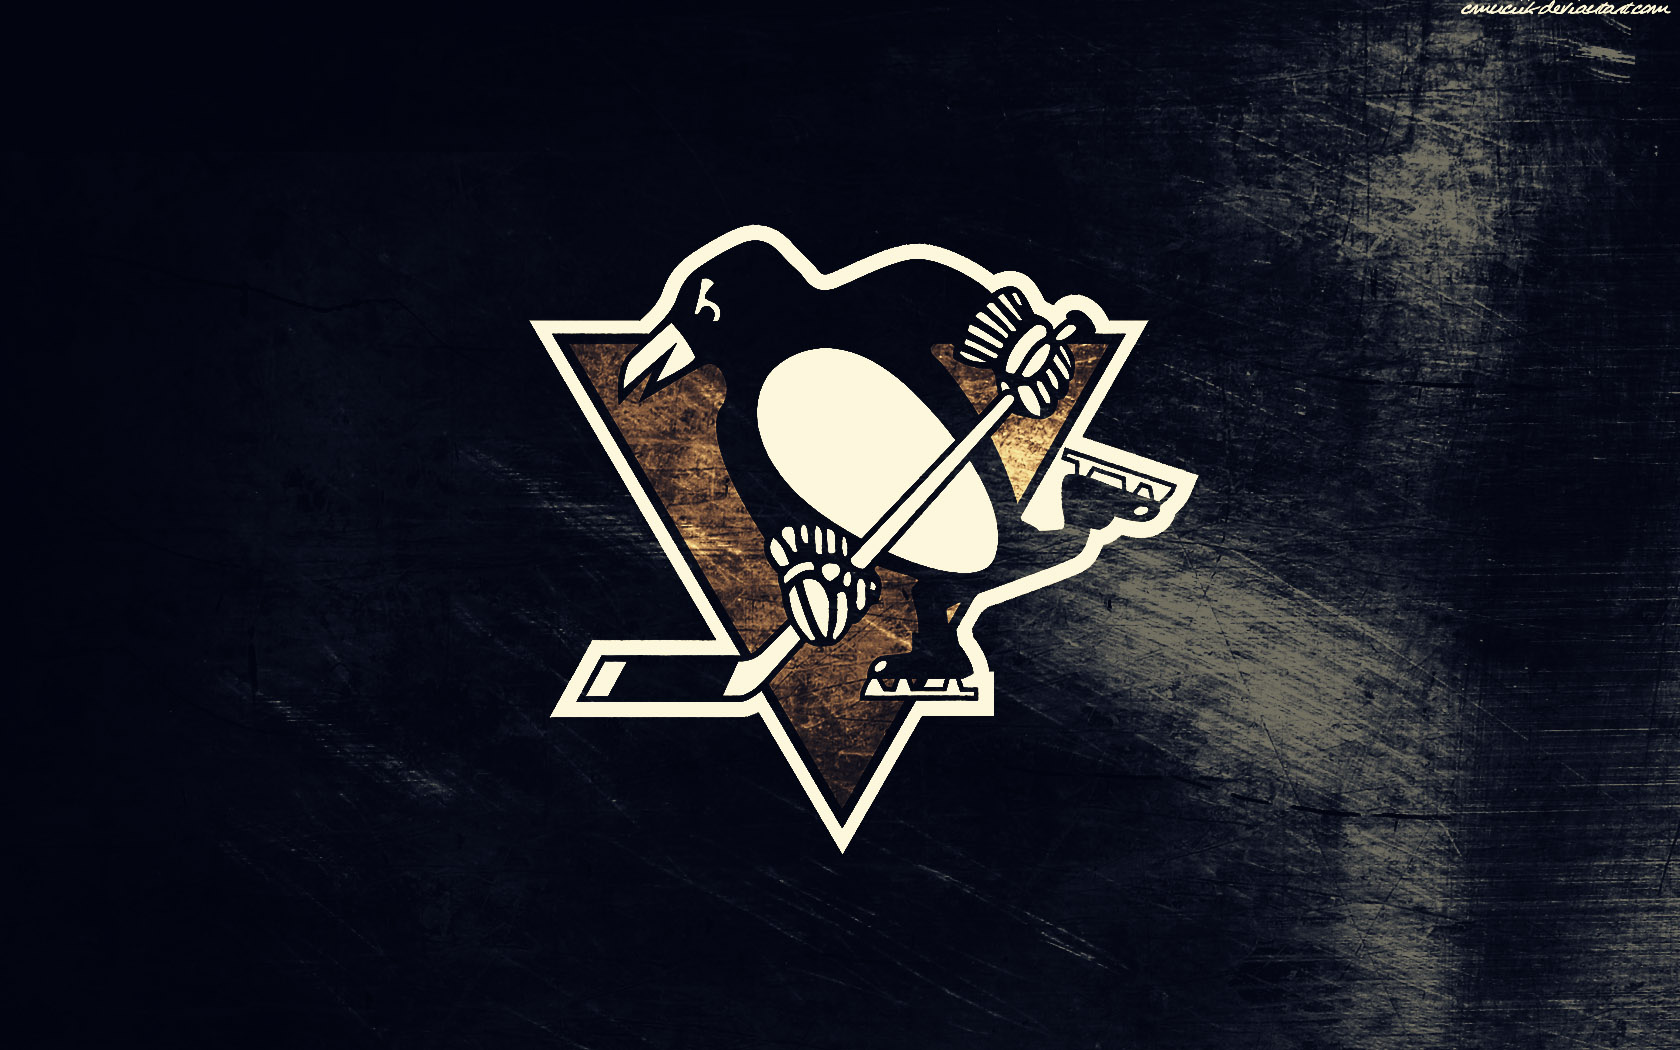 Pittsburgh Penguins Logo by Cmuciik 1680 x 1050 1680x1050